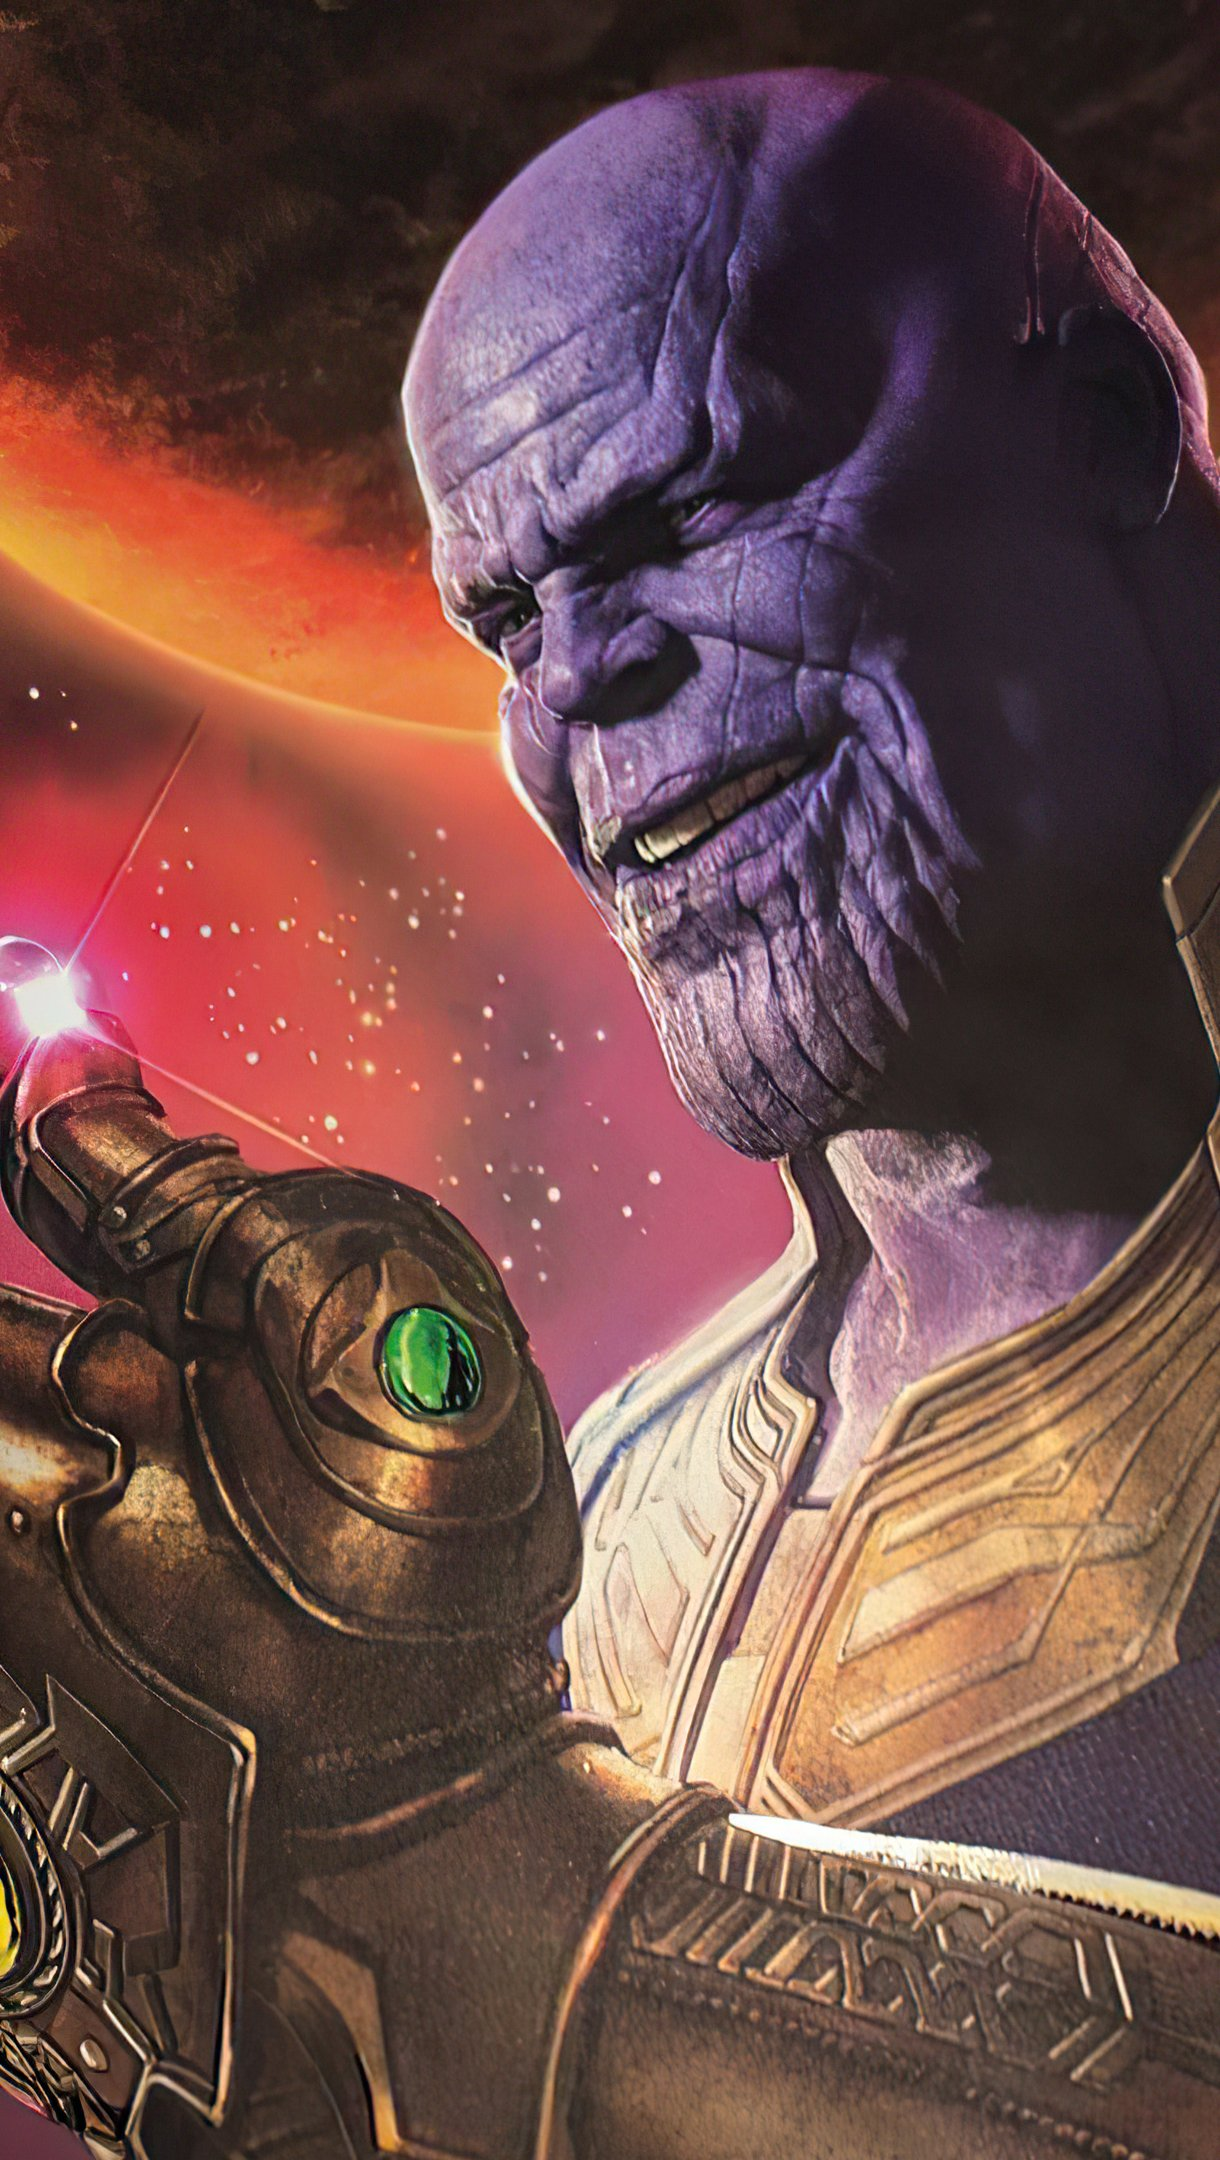 Wallpaper Thanos snaping fingers Vertical